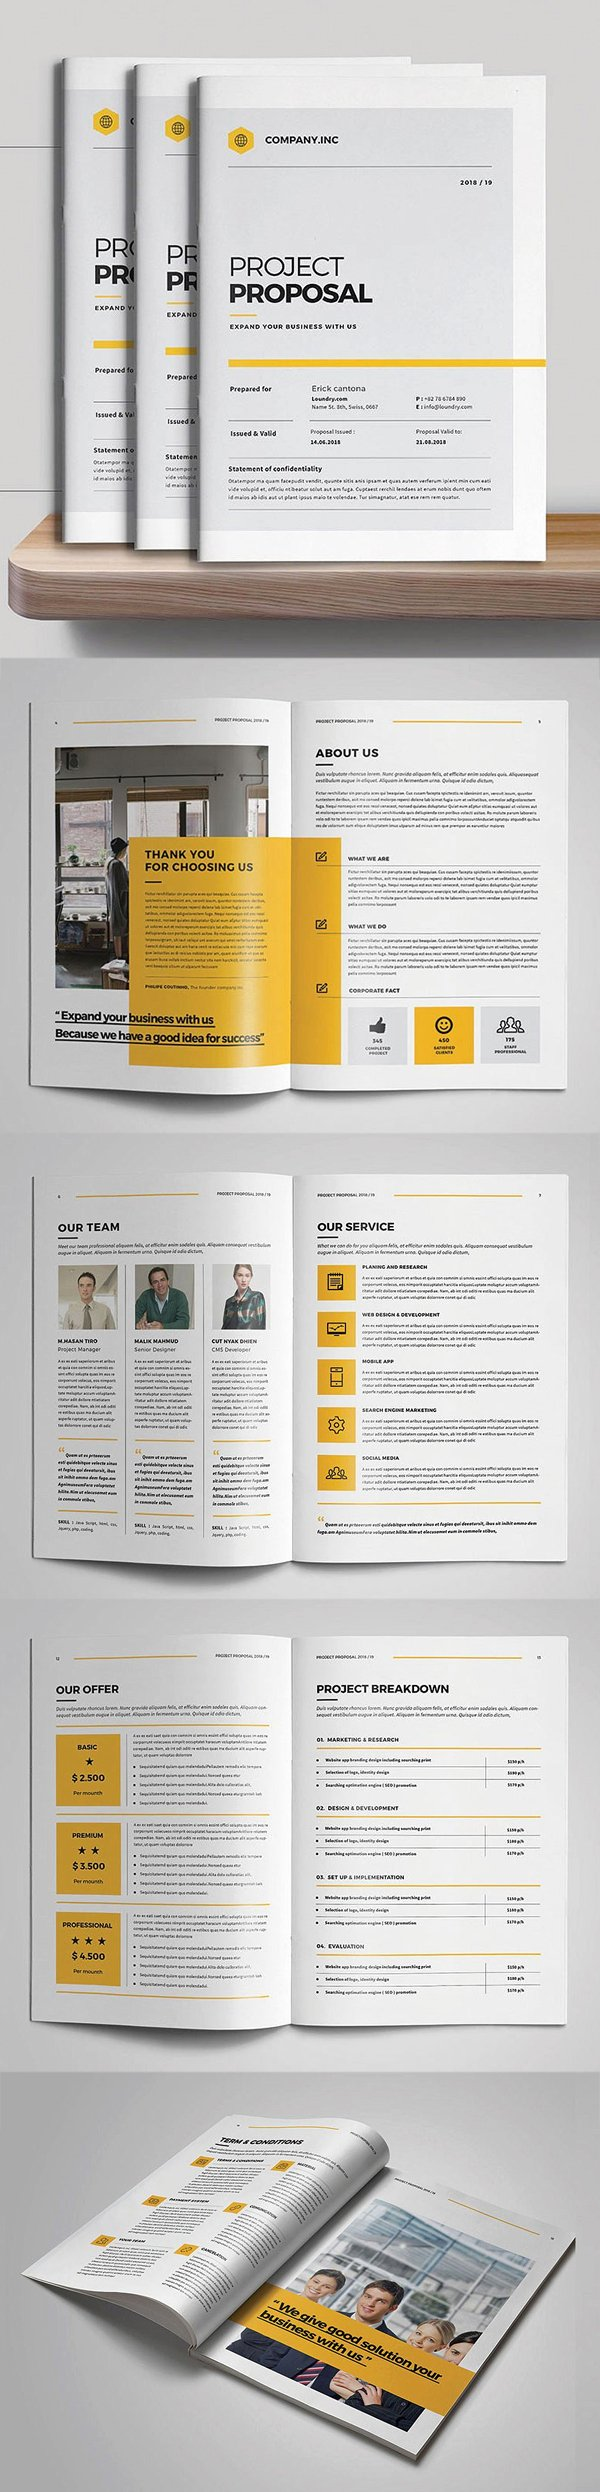 Graphic Design Proposal Template Inspirational Business Proposal Brochure Templates Design